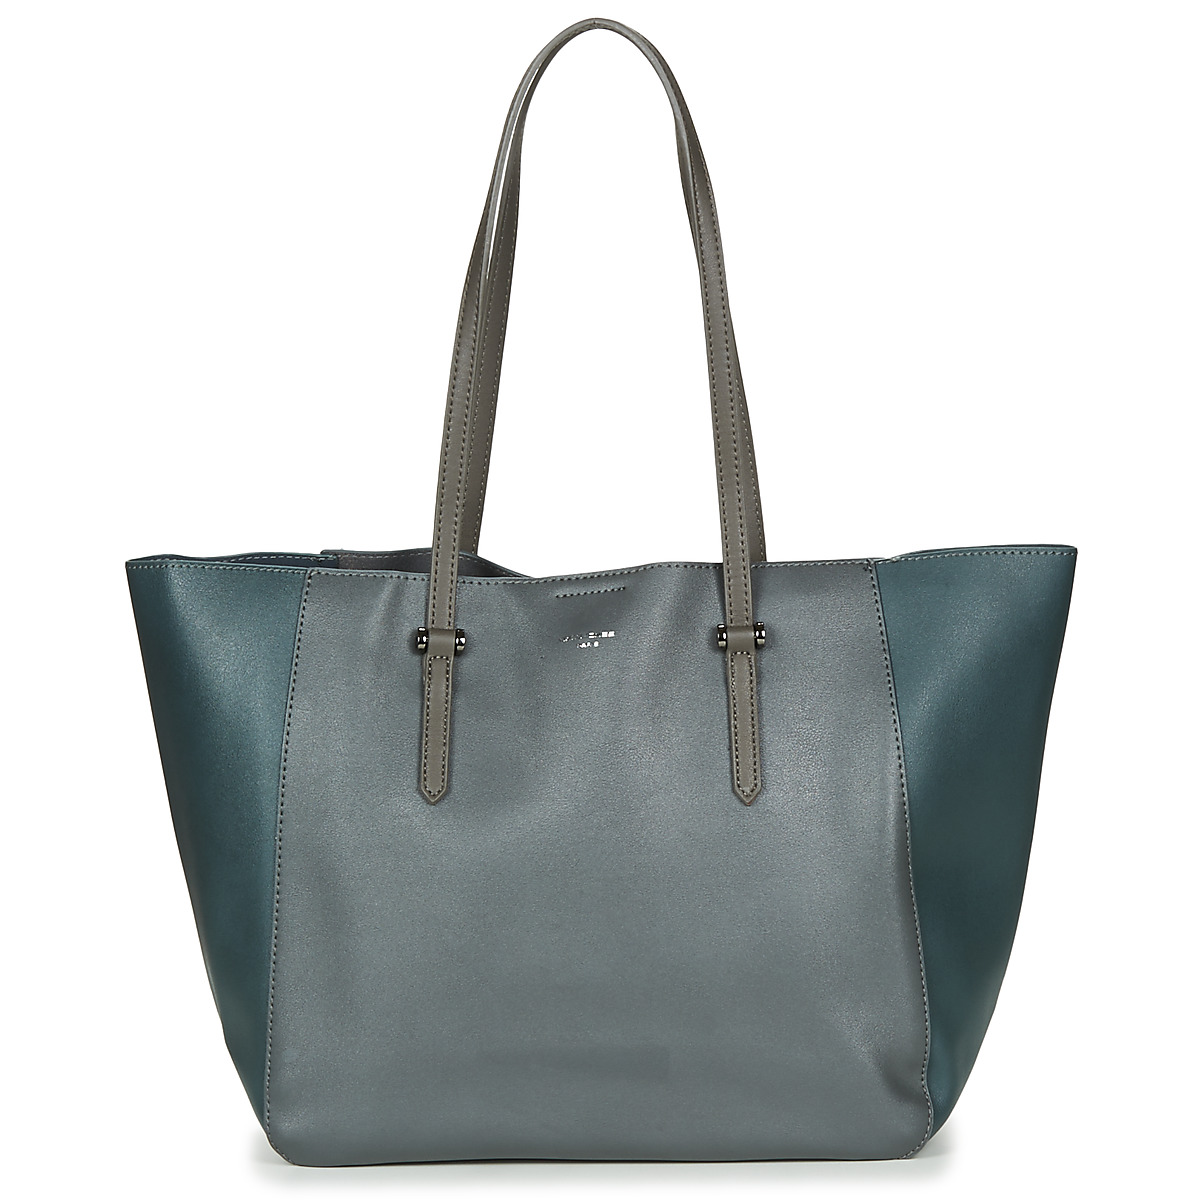 Borsa a spalla donna David Jones  -  Grigio